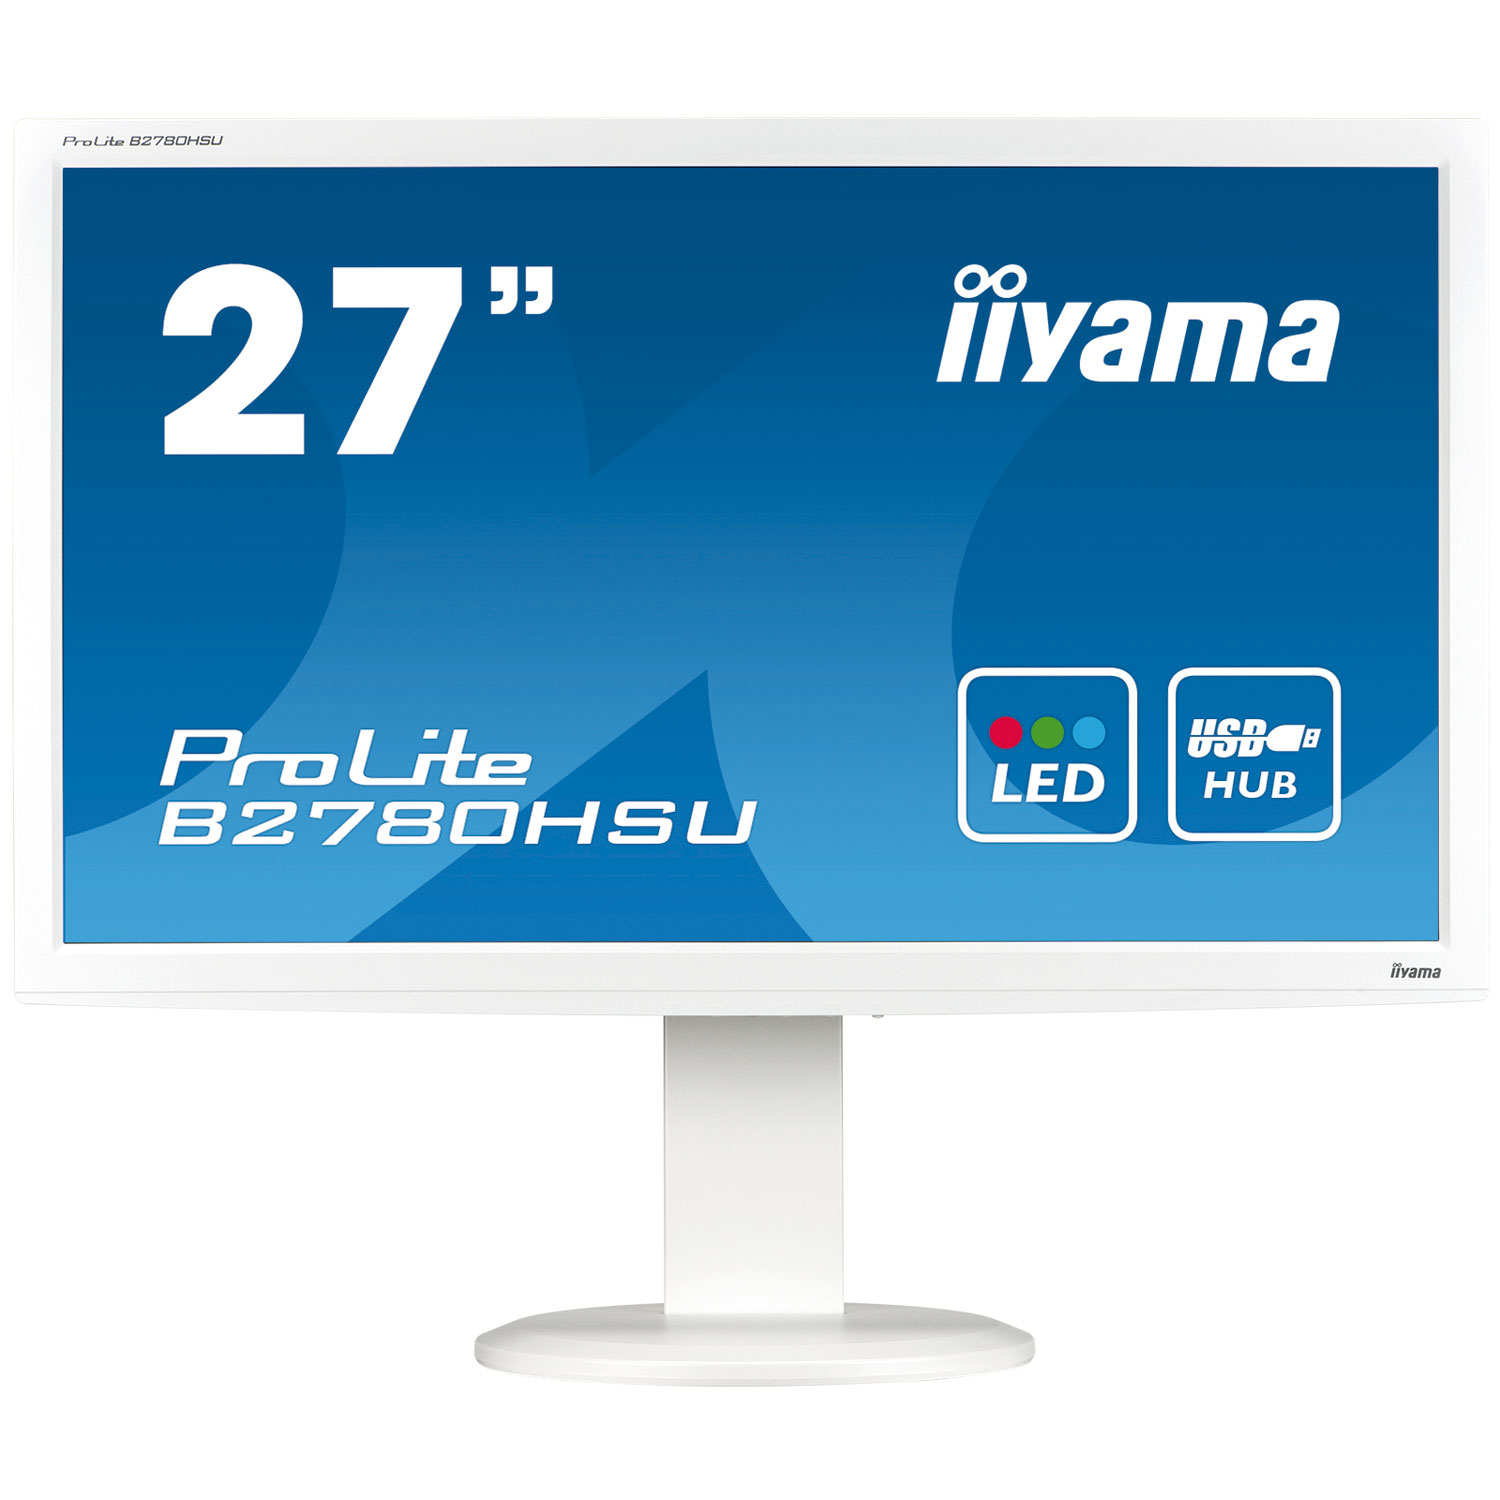 iiyama 27 led prolite b2780hsu blanc ecran pc iiyama sur. Black Bedroom Furniture Sets. Home Design Ideas